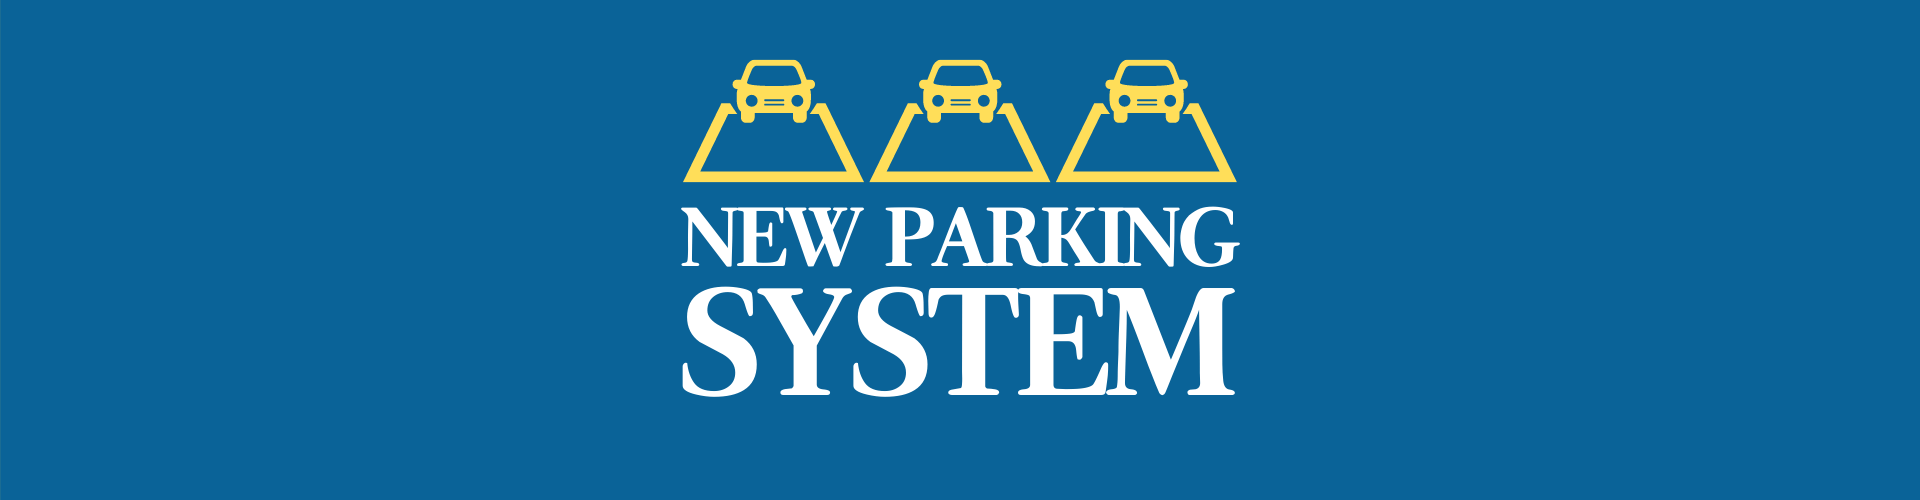 WEB New Parking System (3)